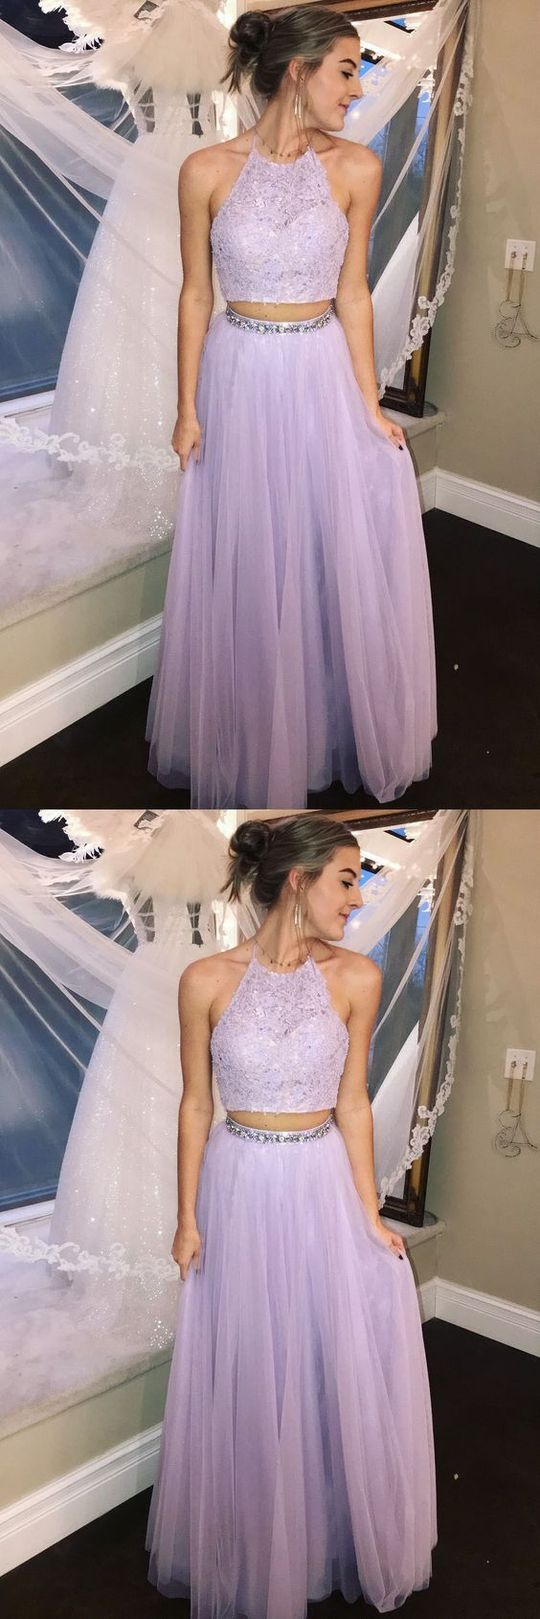 2 Pieces Long Prom Dresses Beads Evening Dresses Tulle A-Line Formal Dresses,C0934